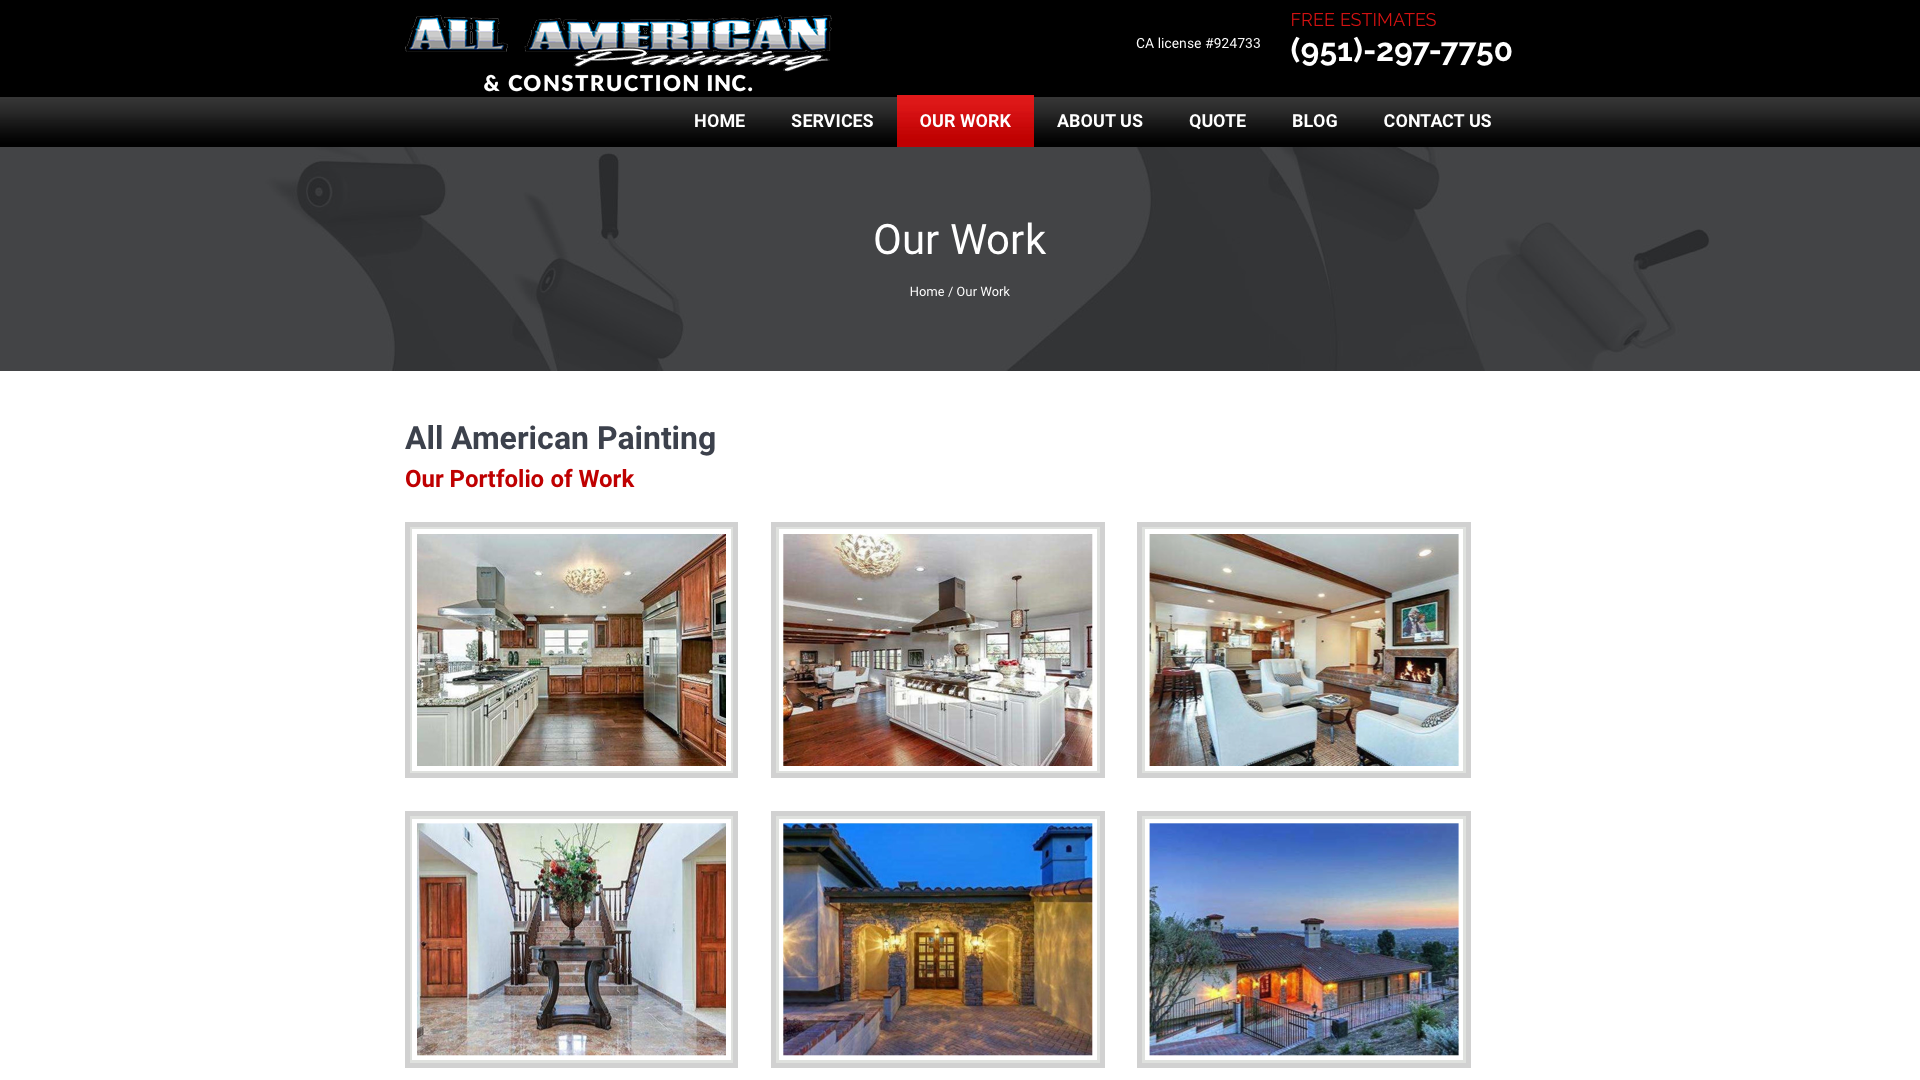 All American & Construction INC